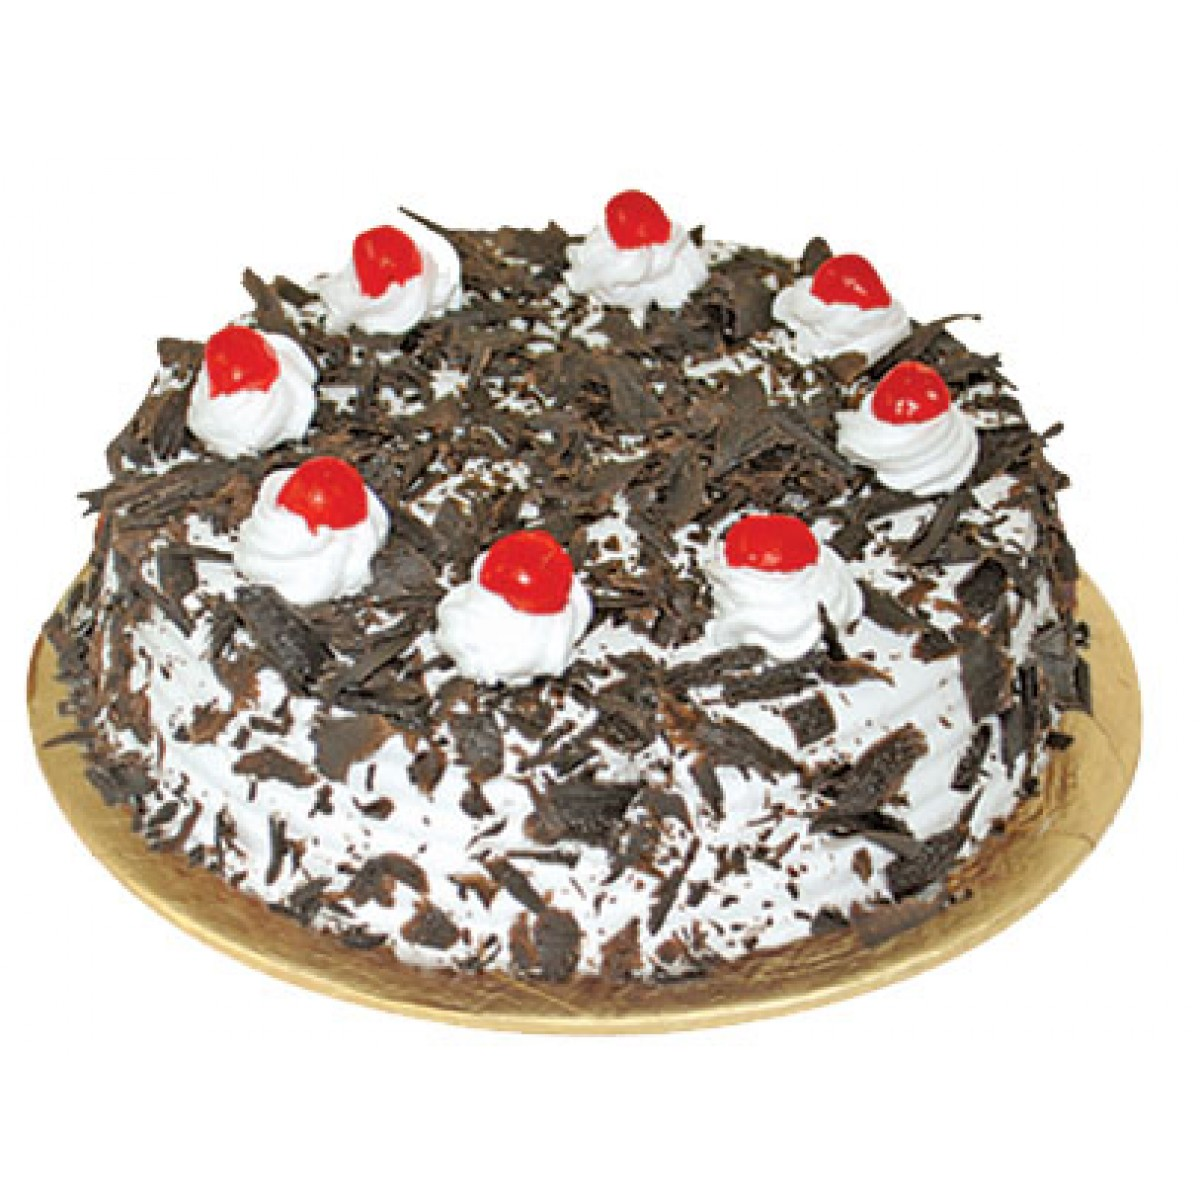 22 LBS Black Forest Cake From Five Star Hotel Bakery